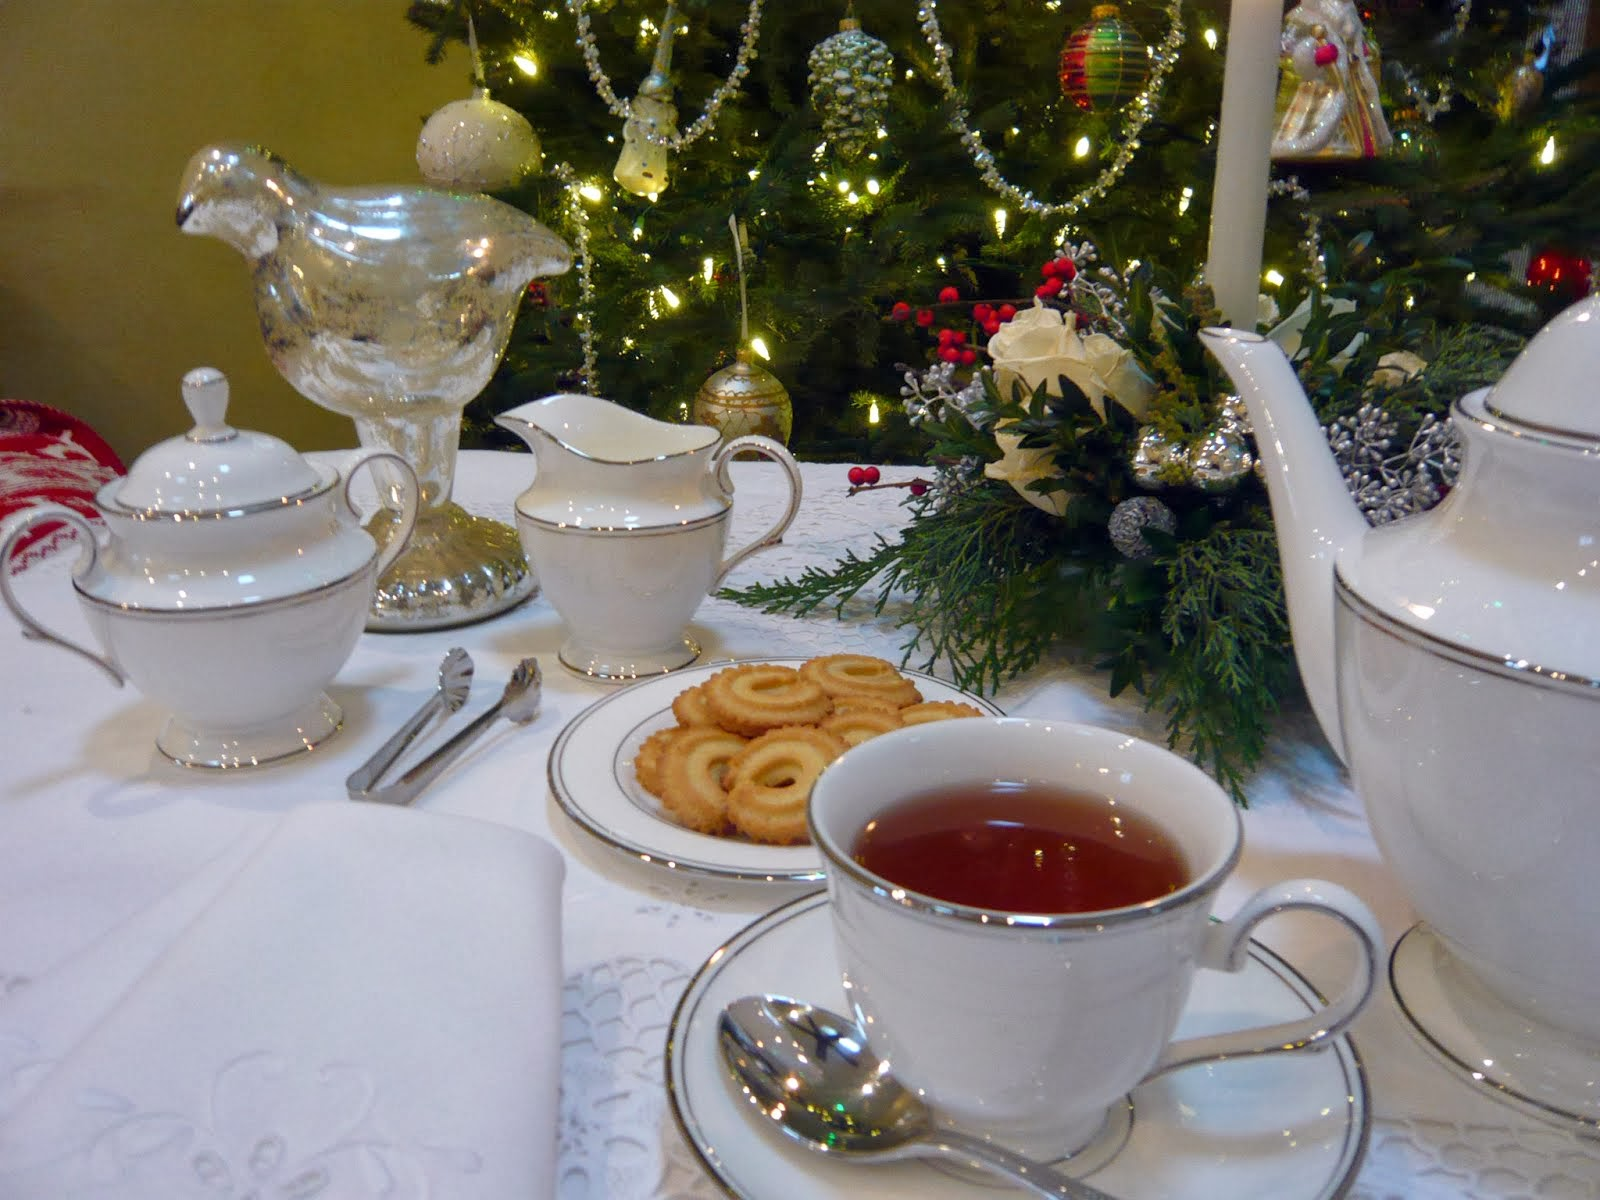 A Cozy Christmas Tea